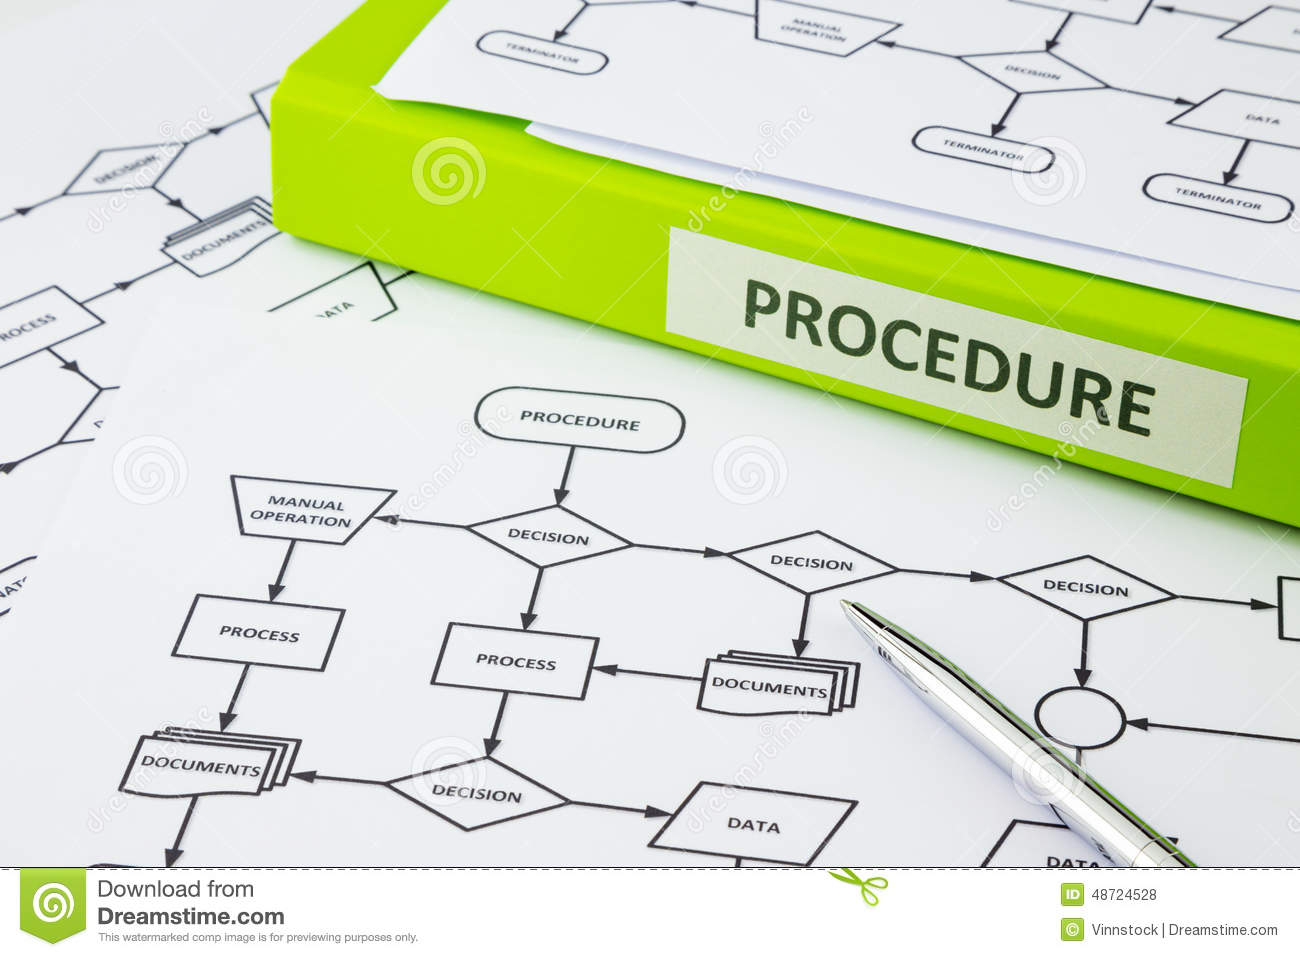 hight resolution of green binder with procedure word on label place on process procedure documents pen pointing at decision word in flow chart